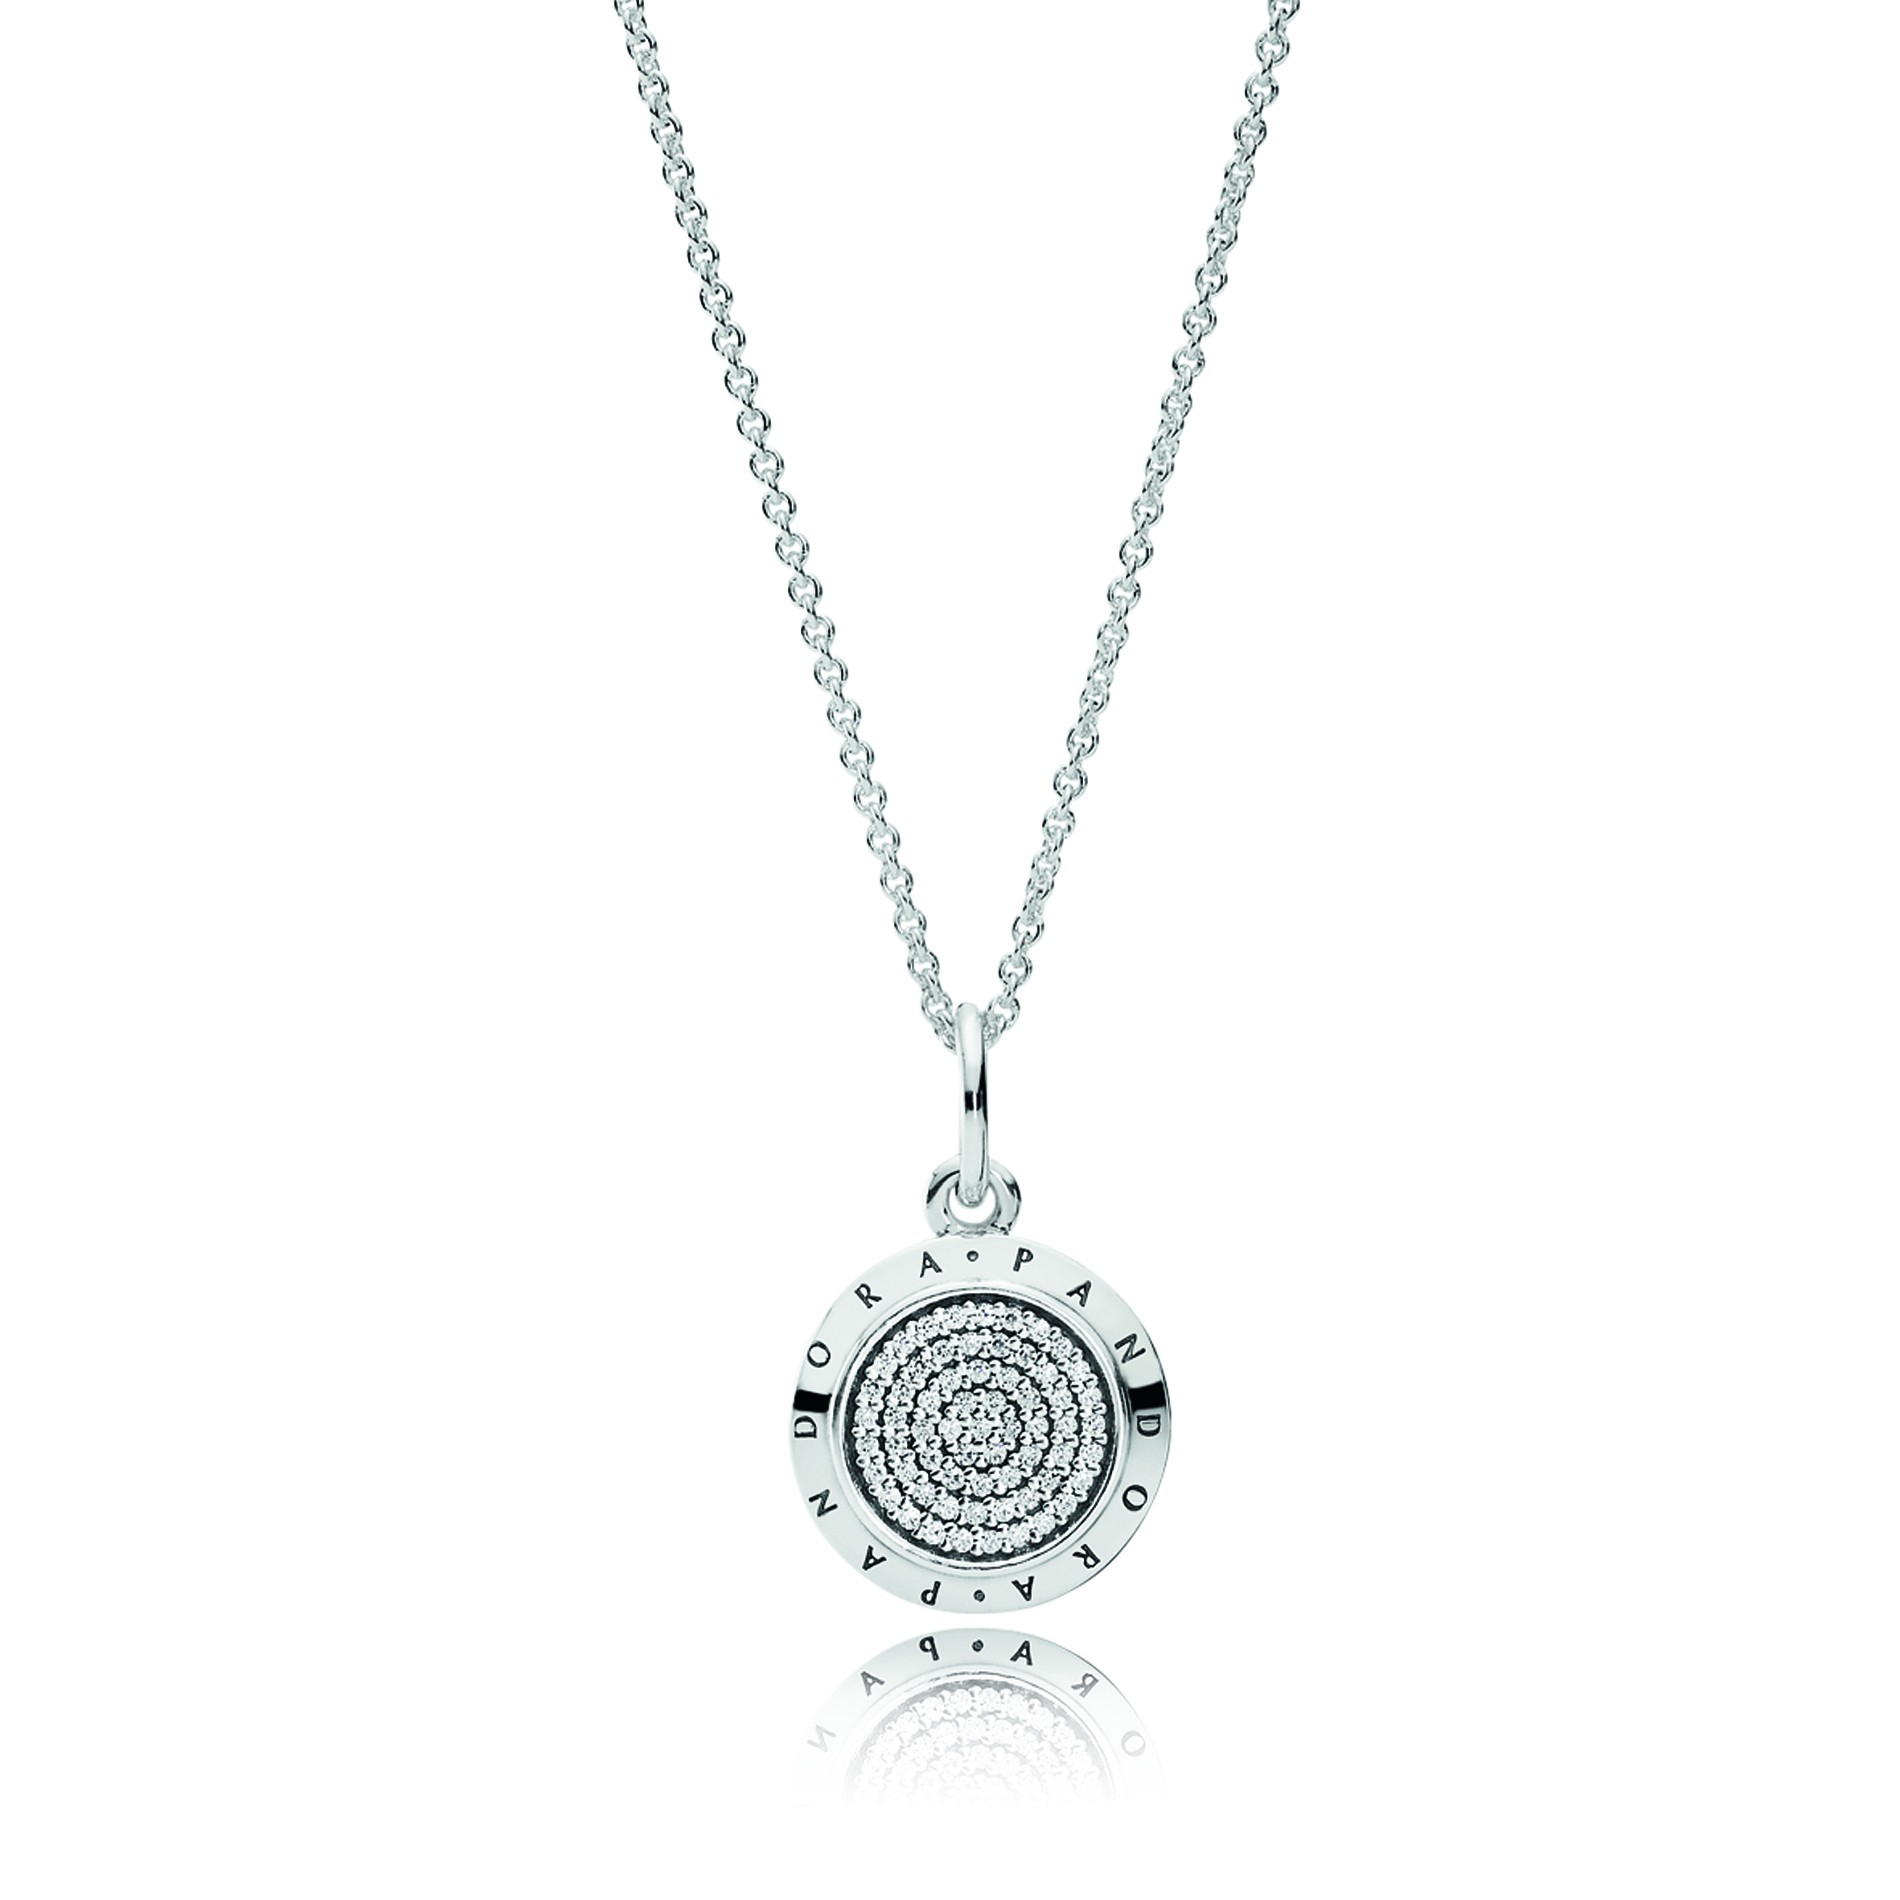 Pandora Signature Necklace, 70Cm Regarding Most Up To Date Pandora Lockets Logo Necklaces (View 15 of 25)